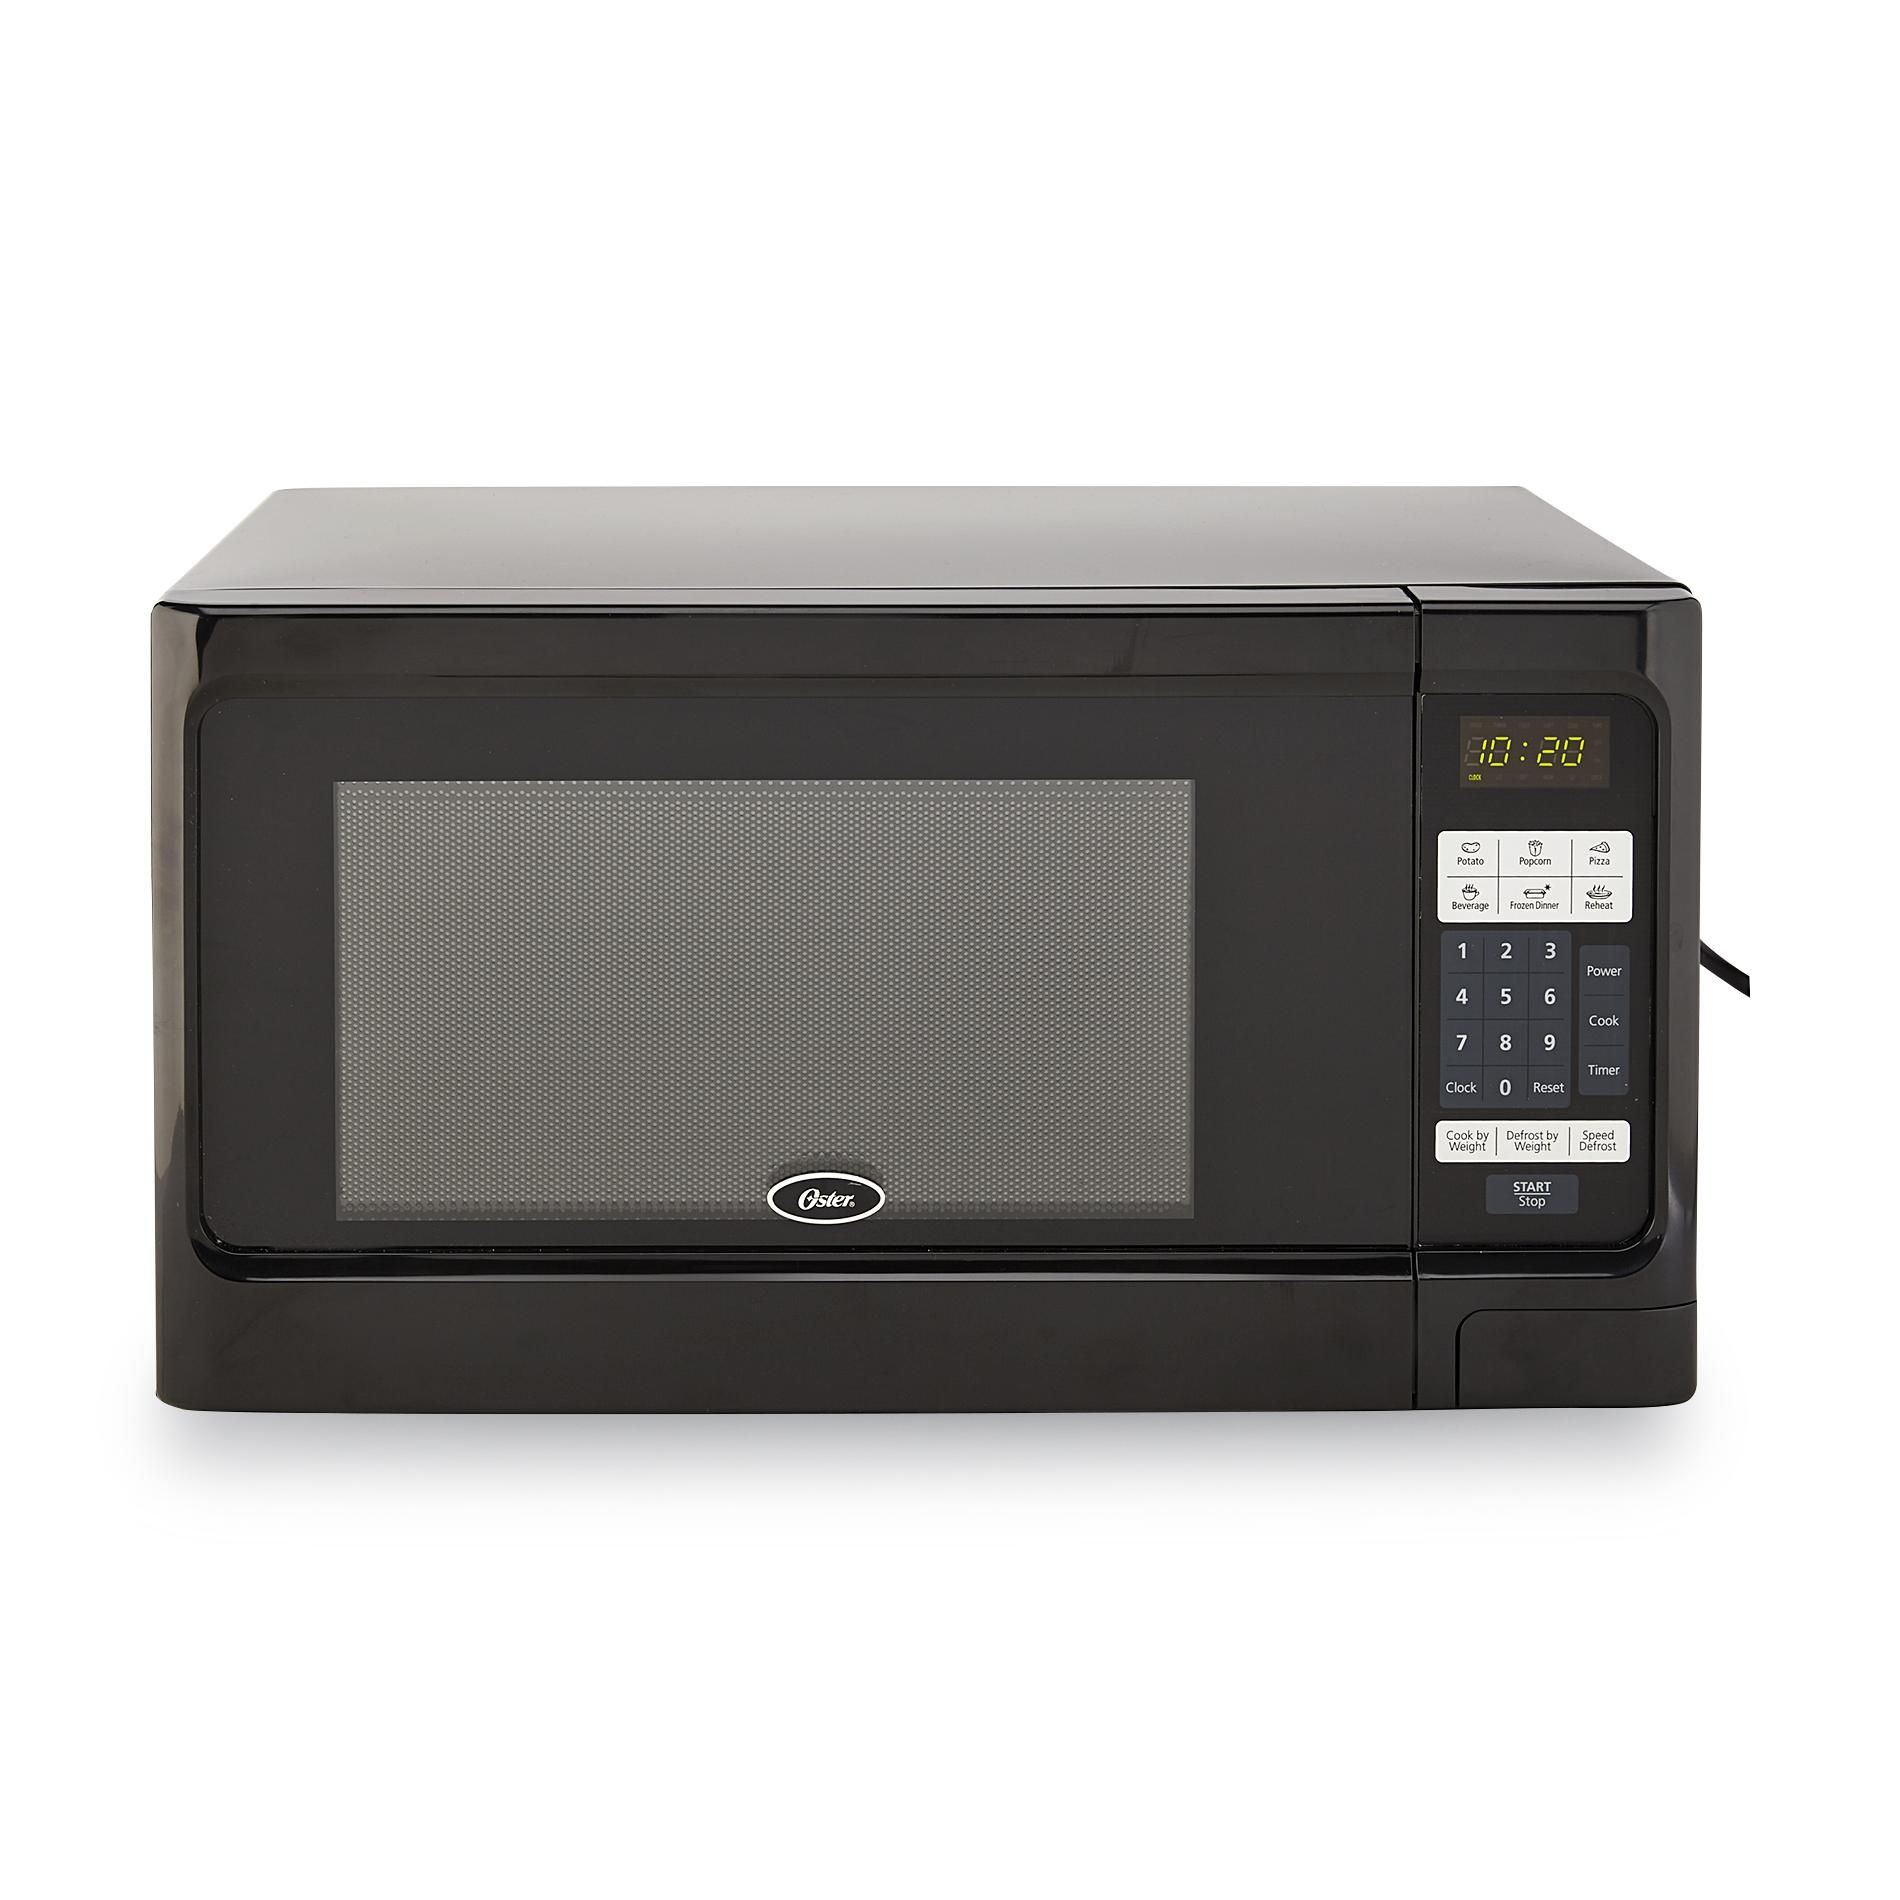 Cook Fast And Easy With The Oster 1 1 Cubic Feet Digital Countertop Microwave Oven Six One Touch Preset Buttons Countertop Microwave Oven Countertop Microwave